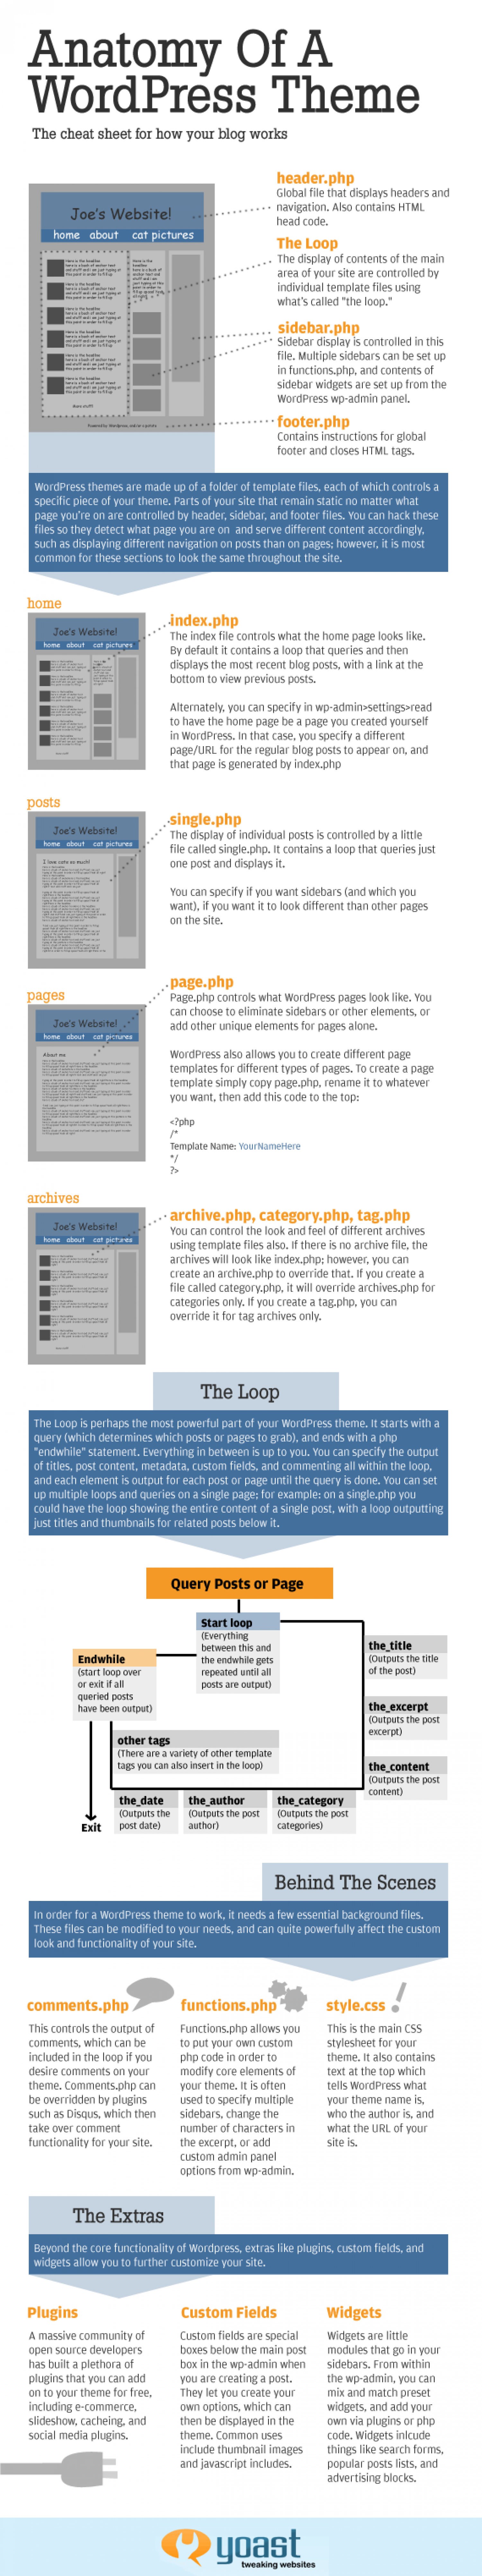 Anatomy of a Wordpress Theme Infographic